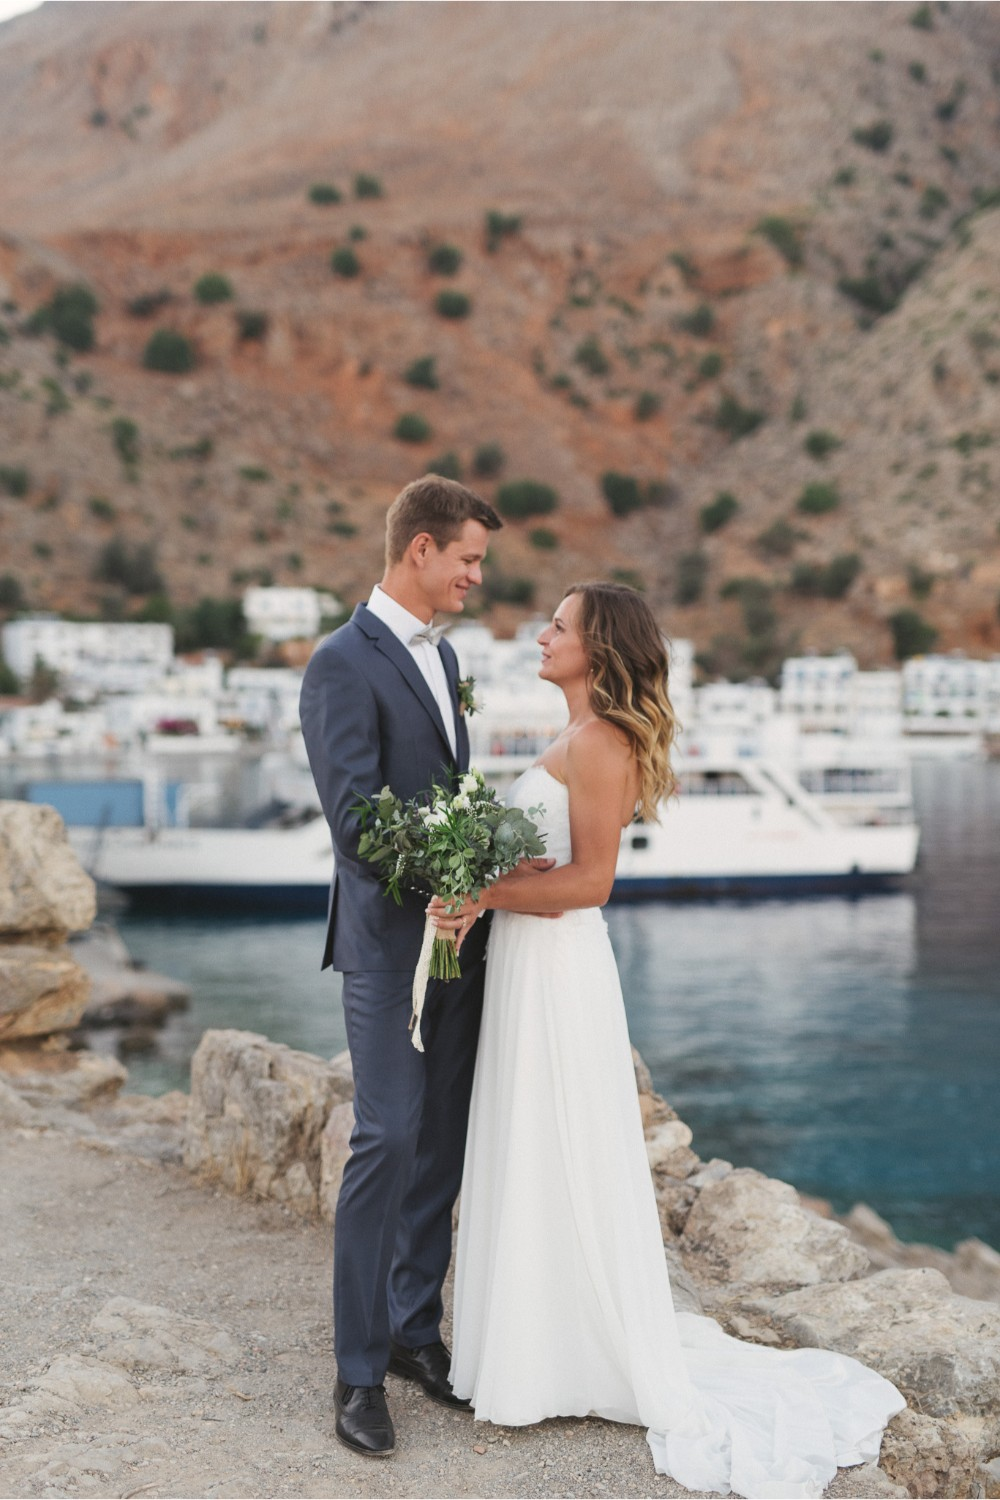 newlyweds at seaside wedding in Crete